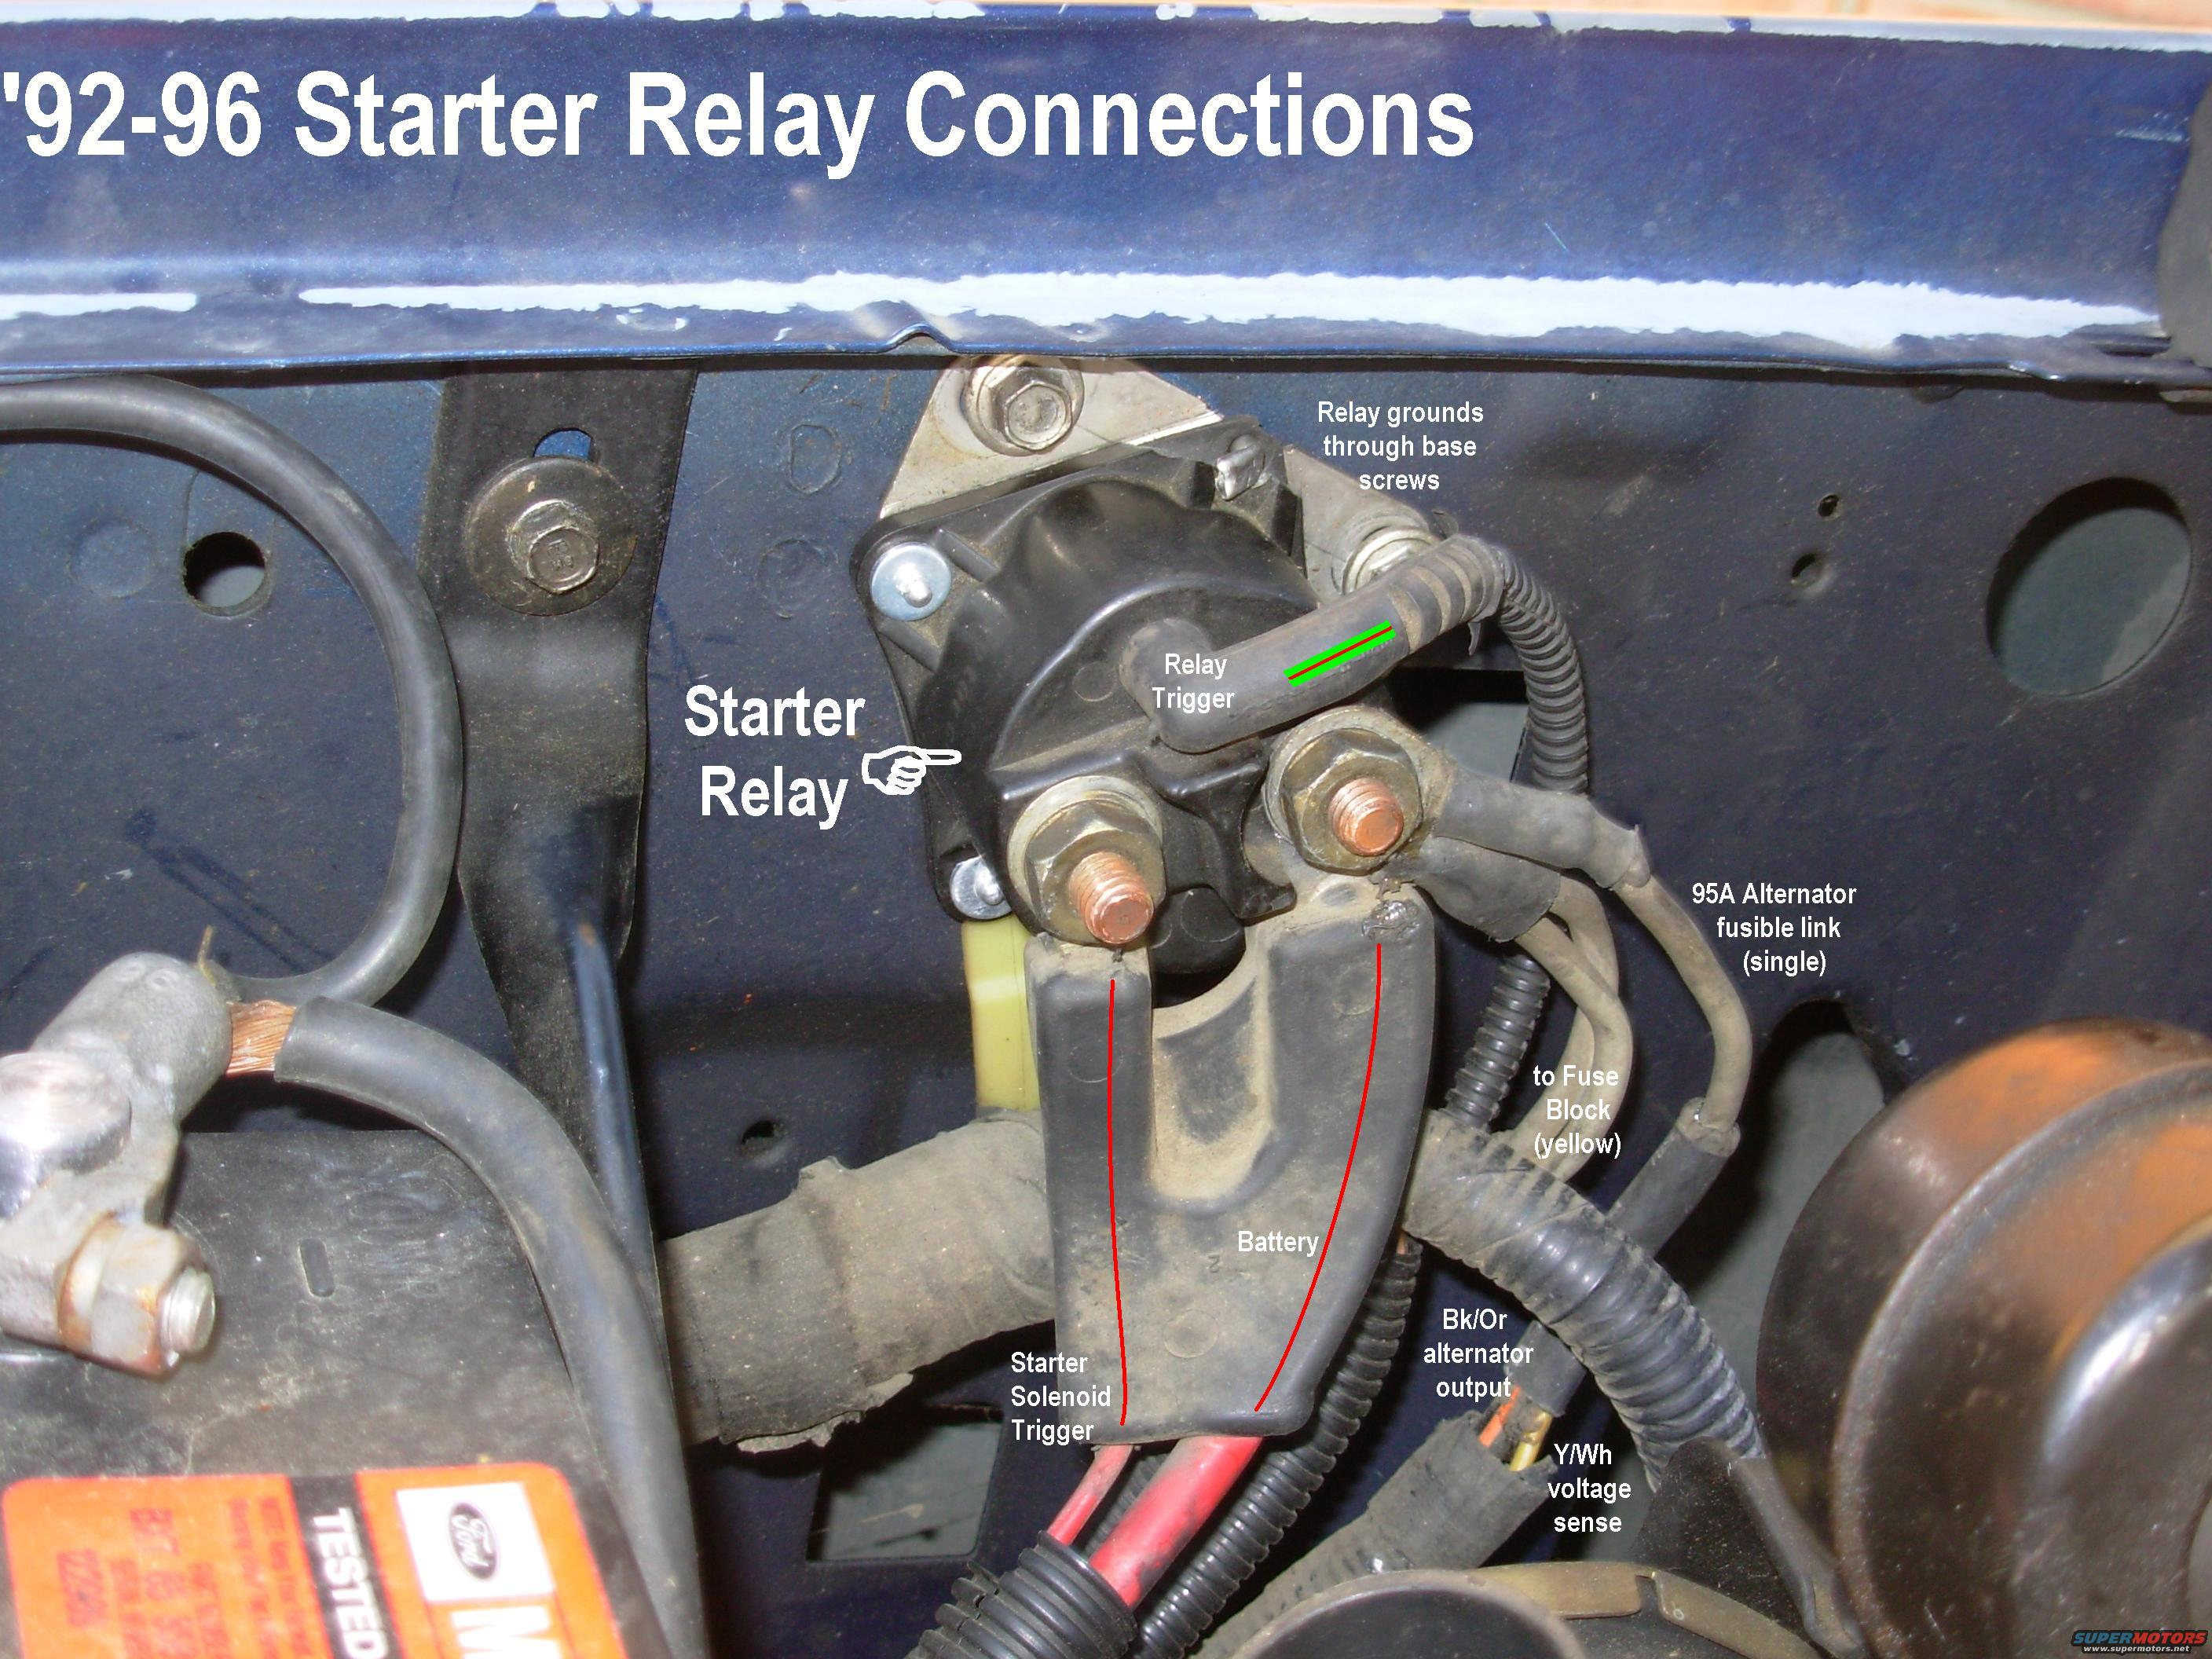 Ford F Starter Wiring Diagram on ford model t wiring-diagram, ford starter parts diagram, ford f-150 alternator diagram, ford f-150 battery diagram, ford f550 wiring-diagram, ford f-150 ecu wiring diagram, 84 ford f 150 wiring diagram, 1985 ford f-150 wiring diagram, ford ignition system wiring diagram, ford f-150 lariat decals, ford truck wiring diagrams, 2001 mercury sable starter diagram, 1990 ford f-150 wiring diagram, ford f-150 wire schematics, ford alternator wiring diagram, ford e-150 starter switch wiring, 2004 ford f-150 wiring diagram, ford f-150 heater diagram, 1970 ford pickup wiring diagram, ford starter relay,